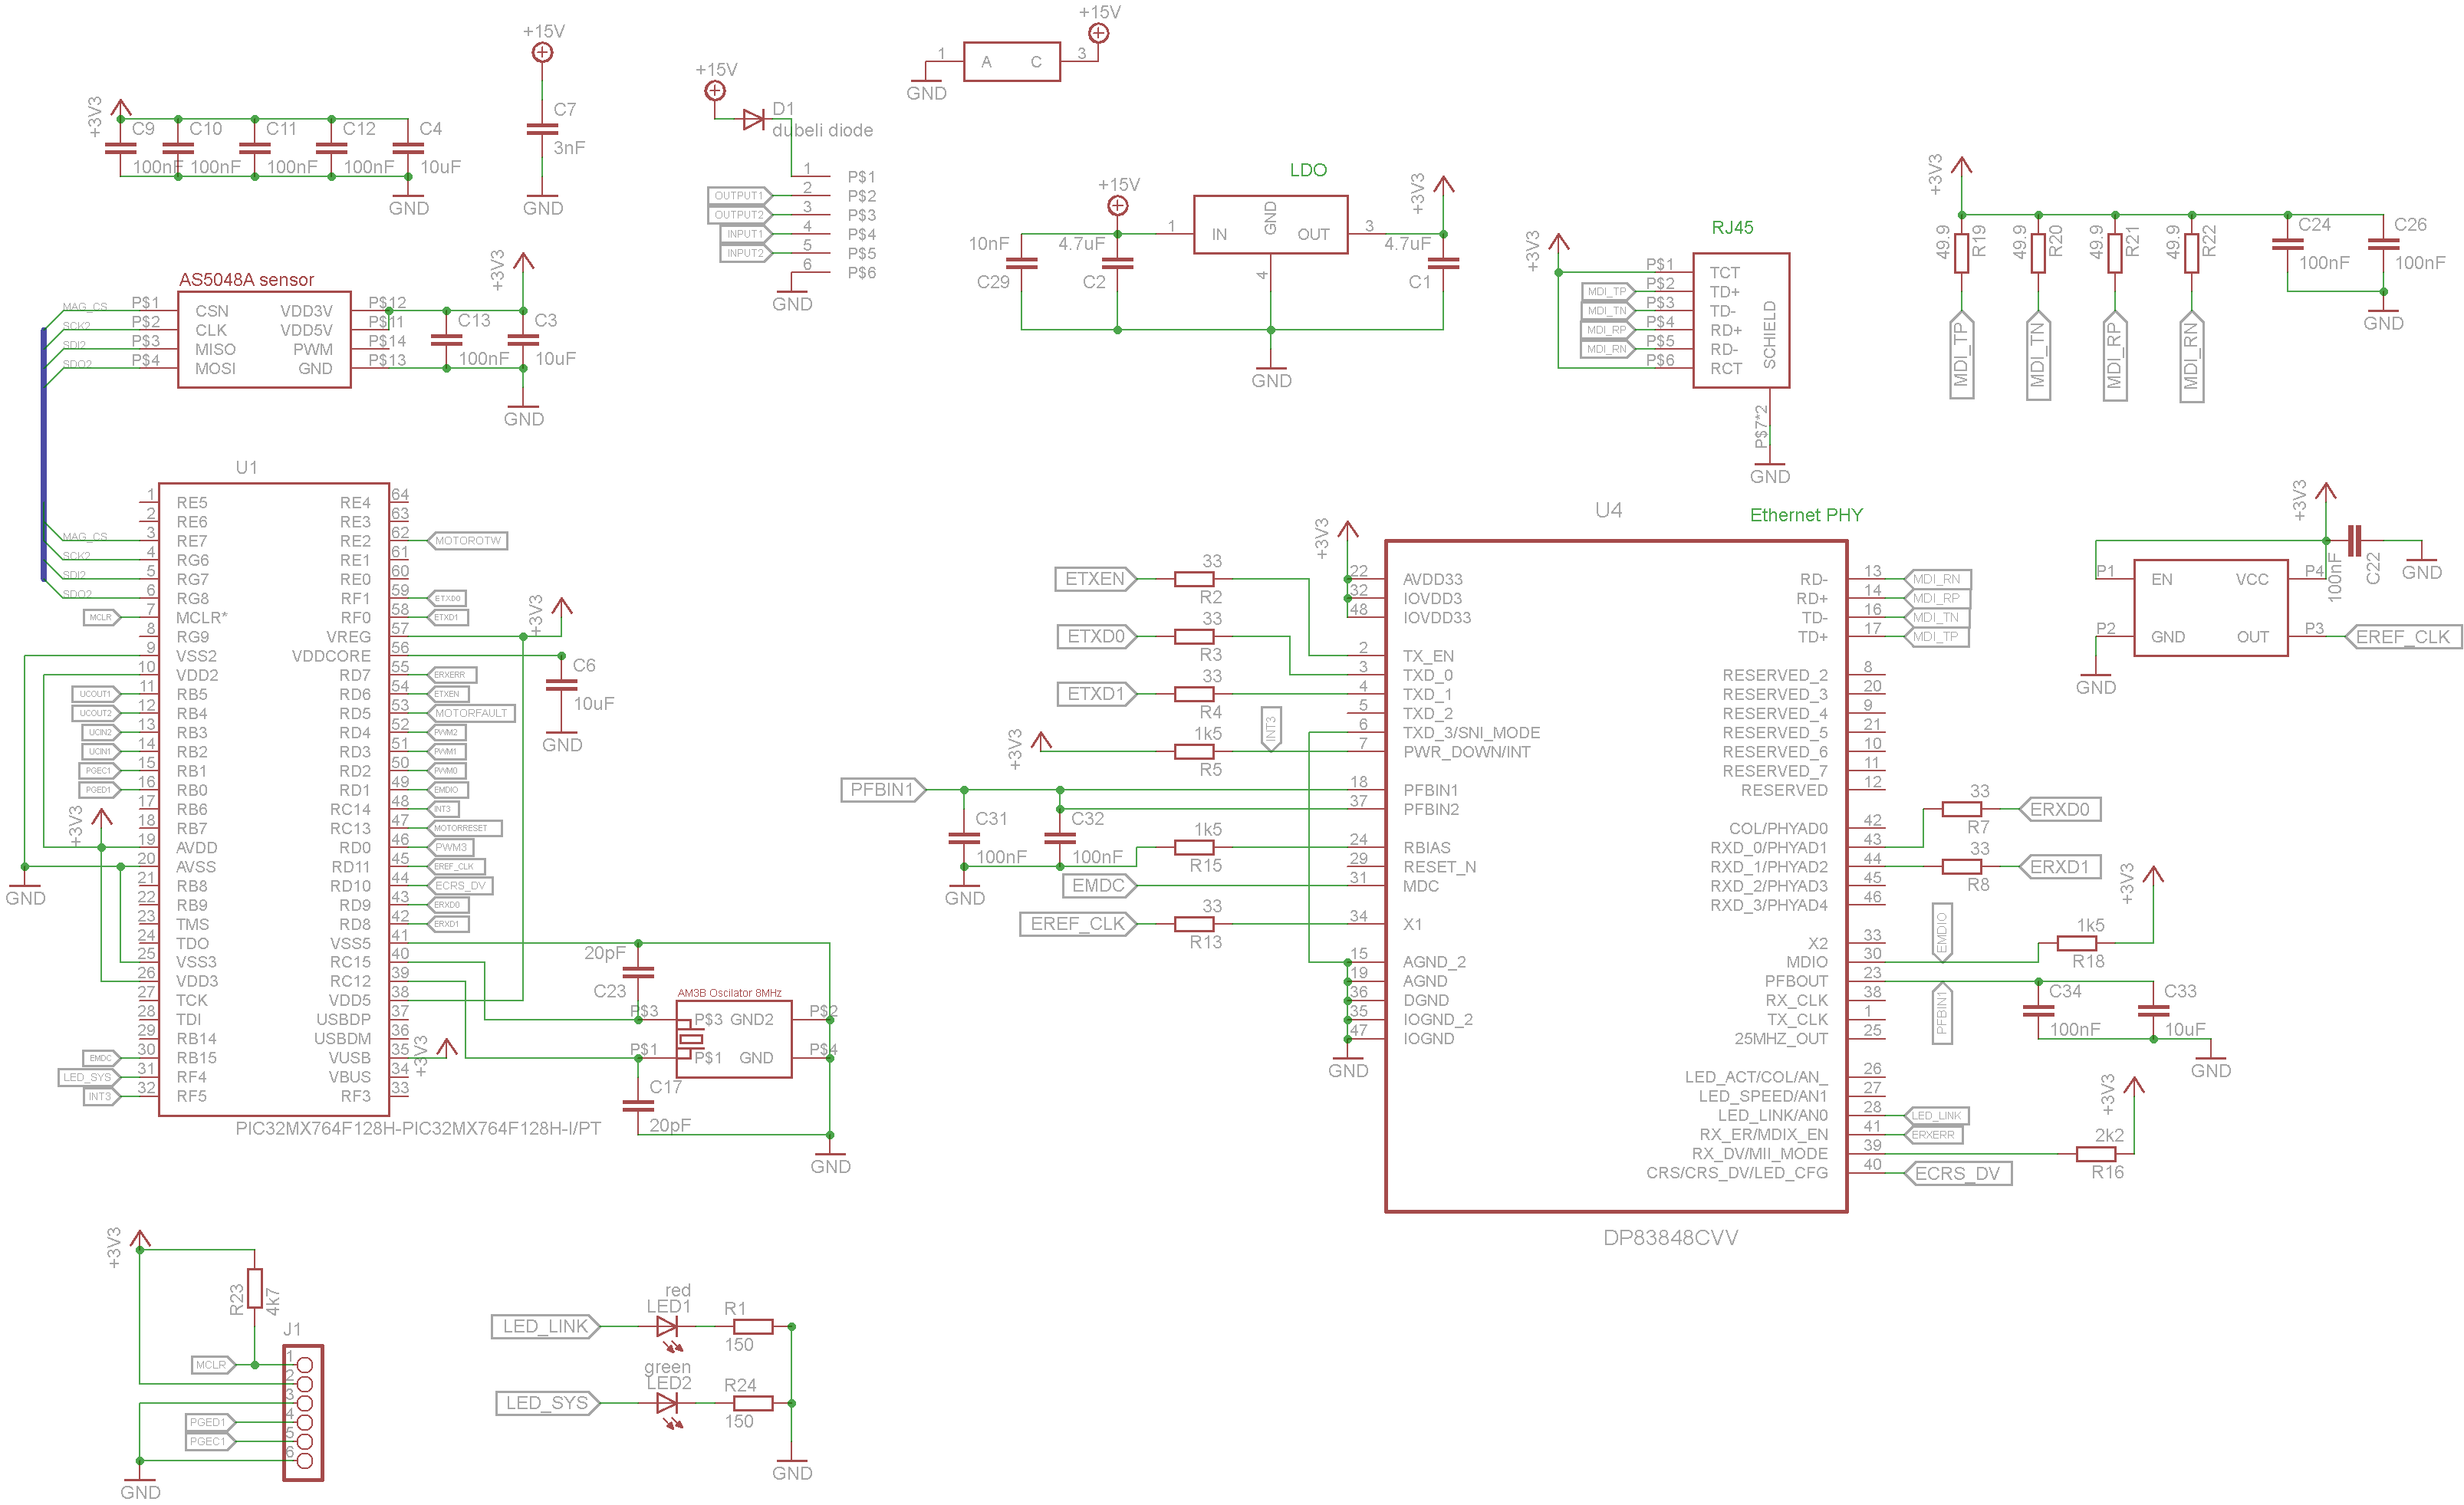 Pic32mx764 64pin And Ethernet Phy Schematics Beginner Question